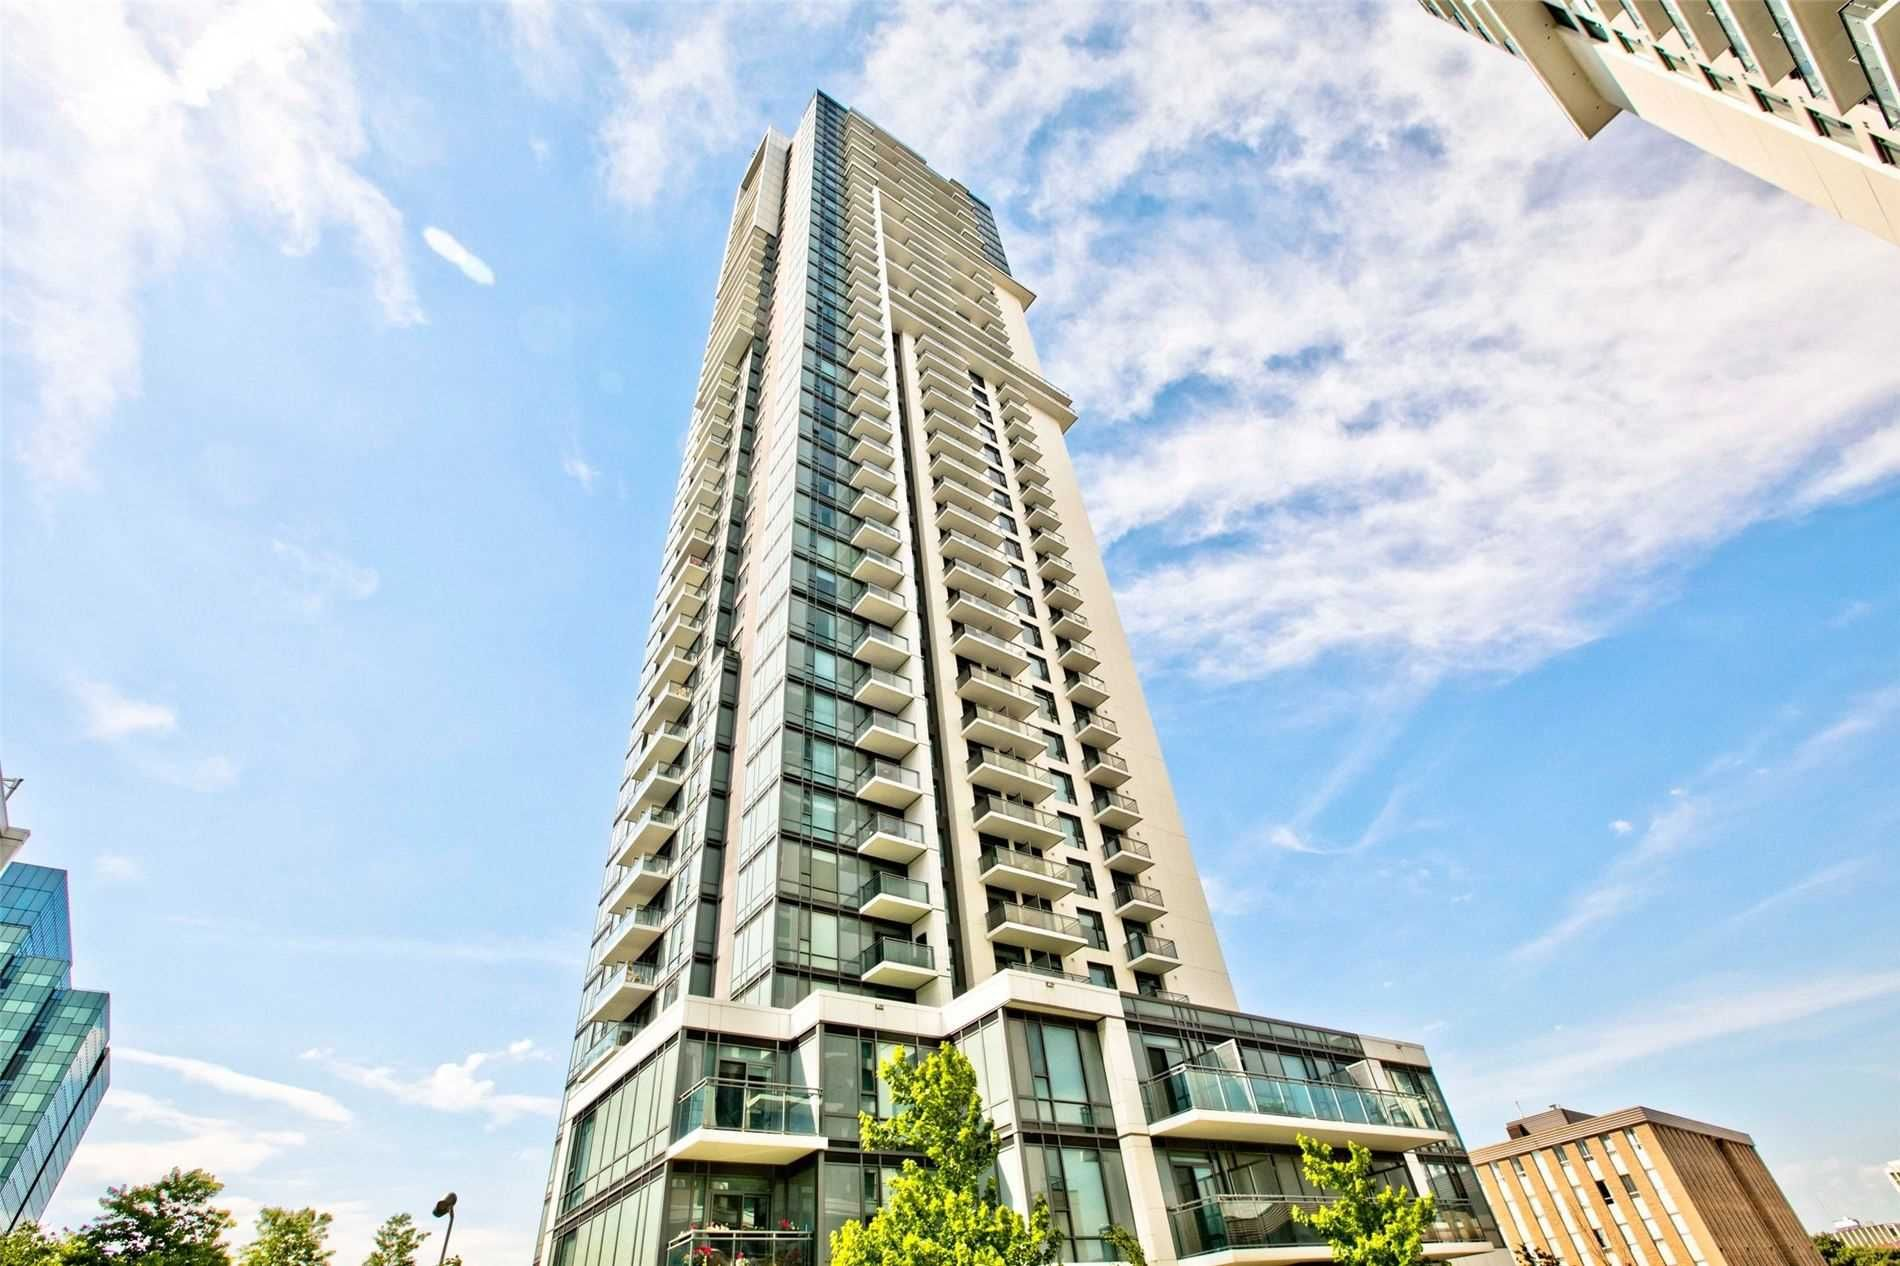 55 Ann O'reilly Rd, unit 1408 for rent in Toronto - image #1